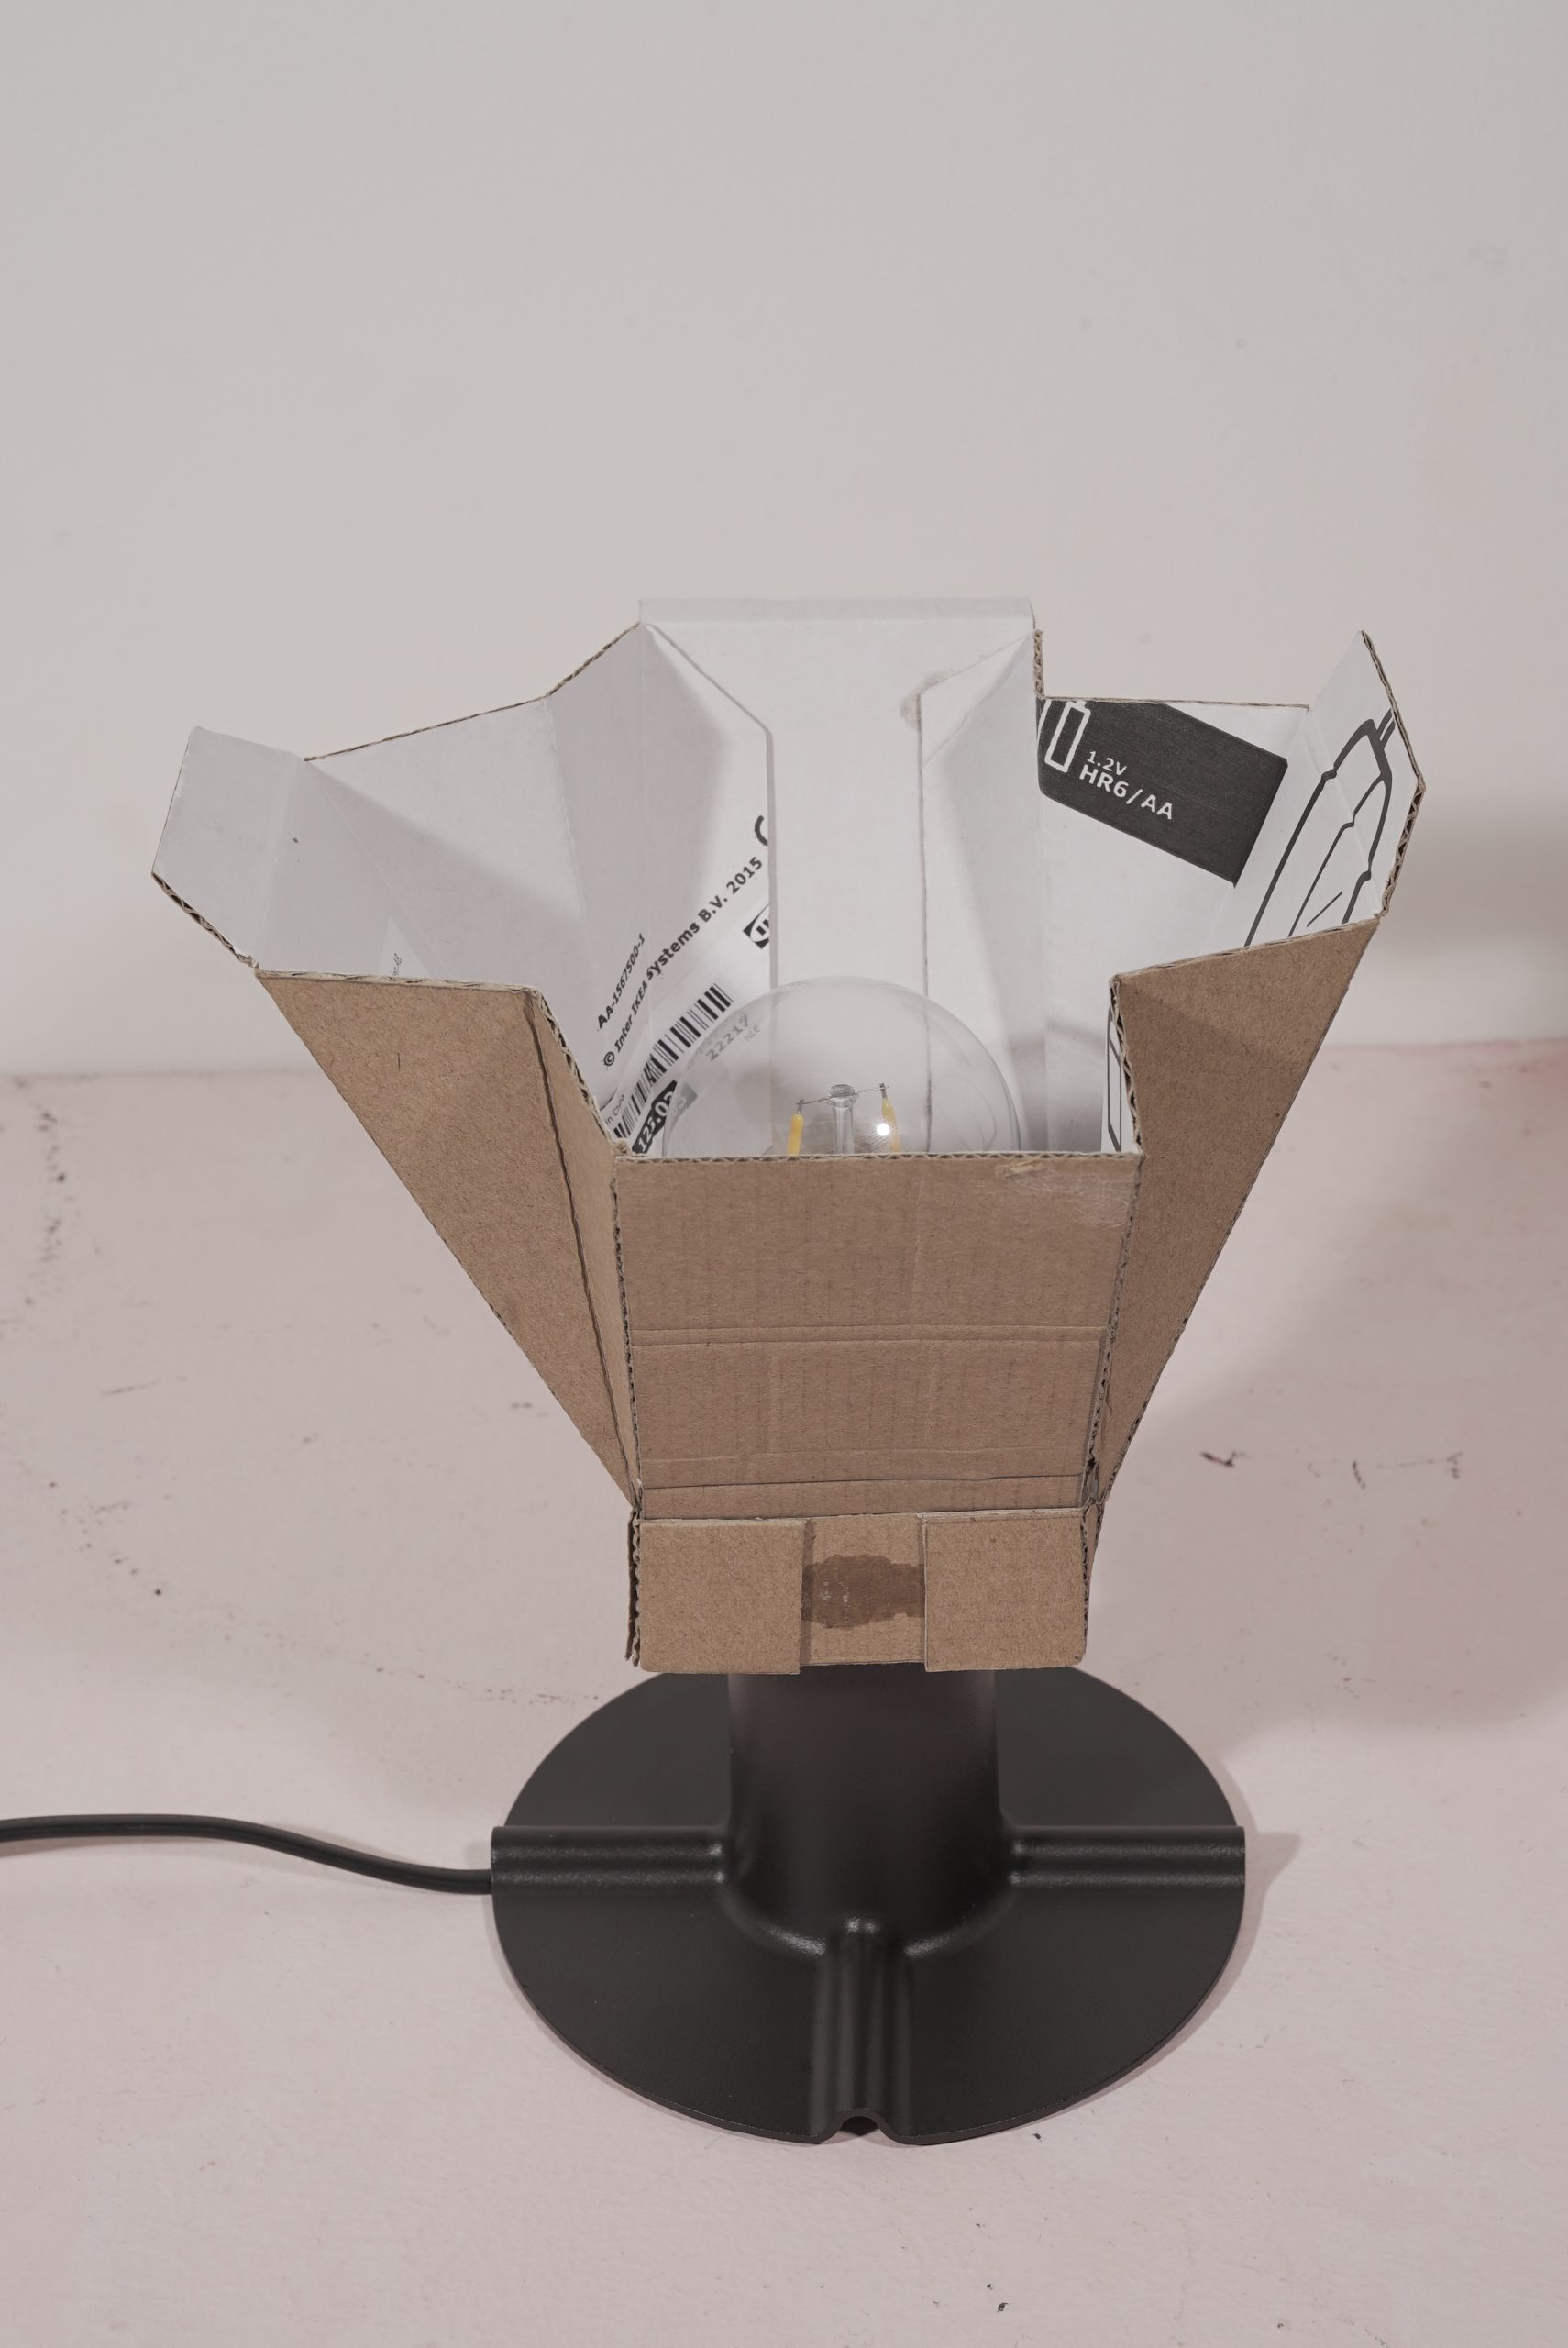 glödlampa packaging lamp product